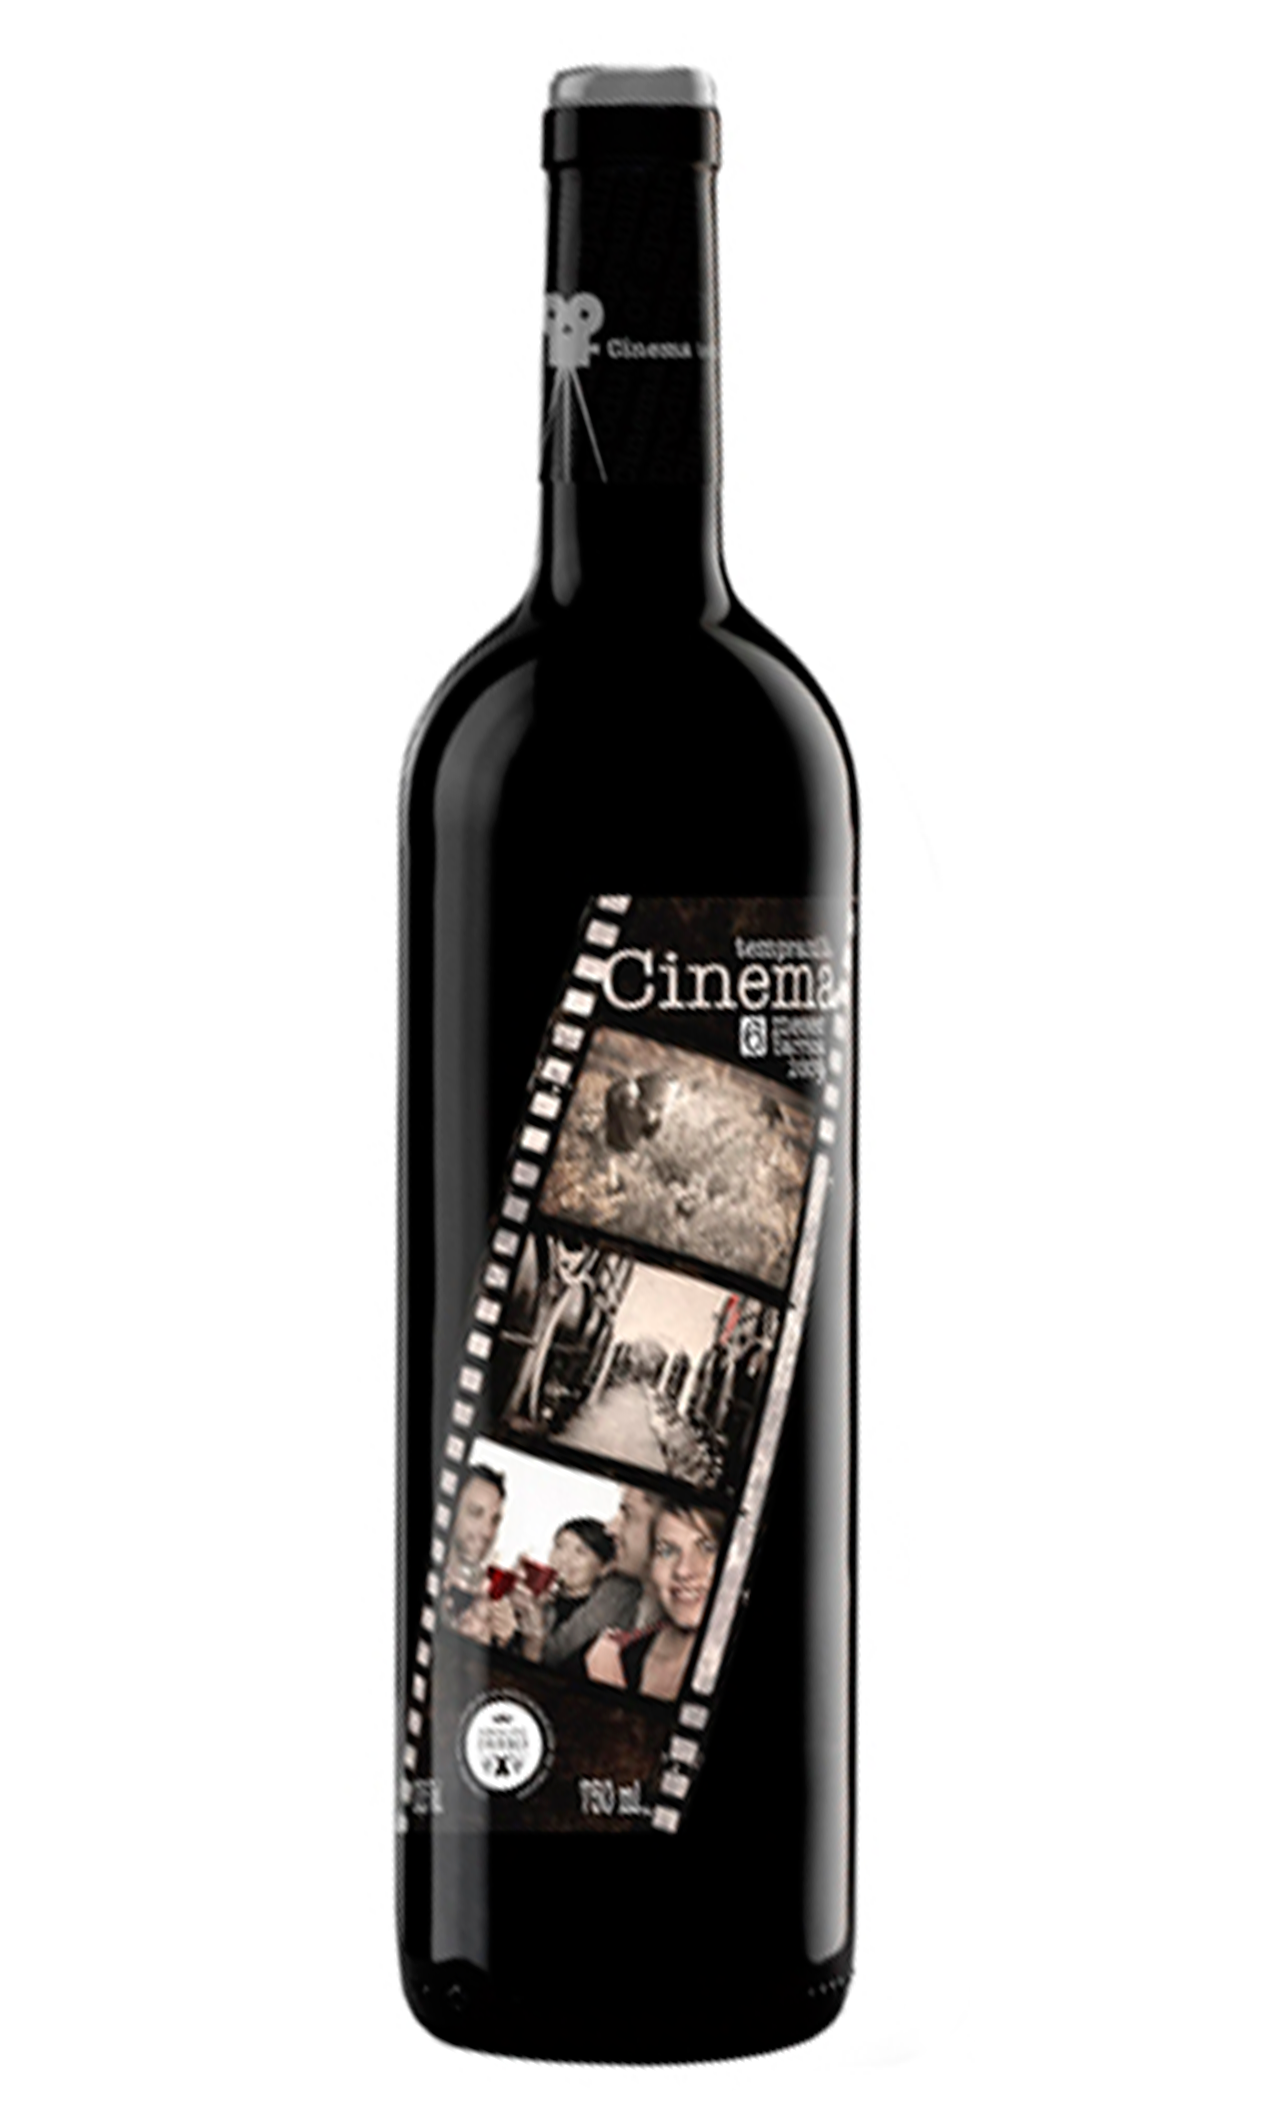 Vino Cinema roble (Ribera del Duero)